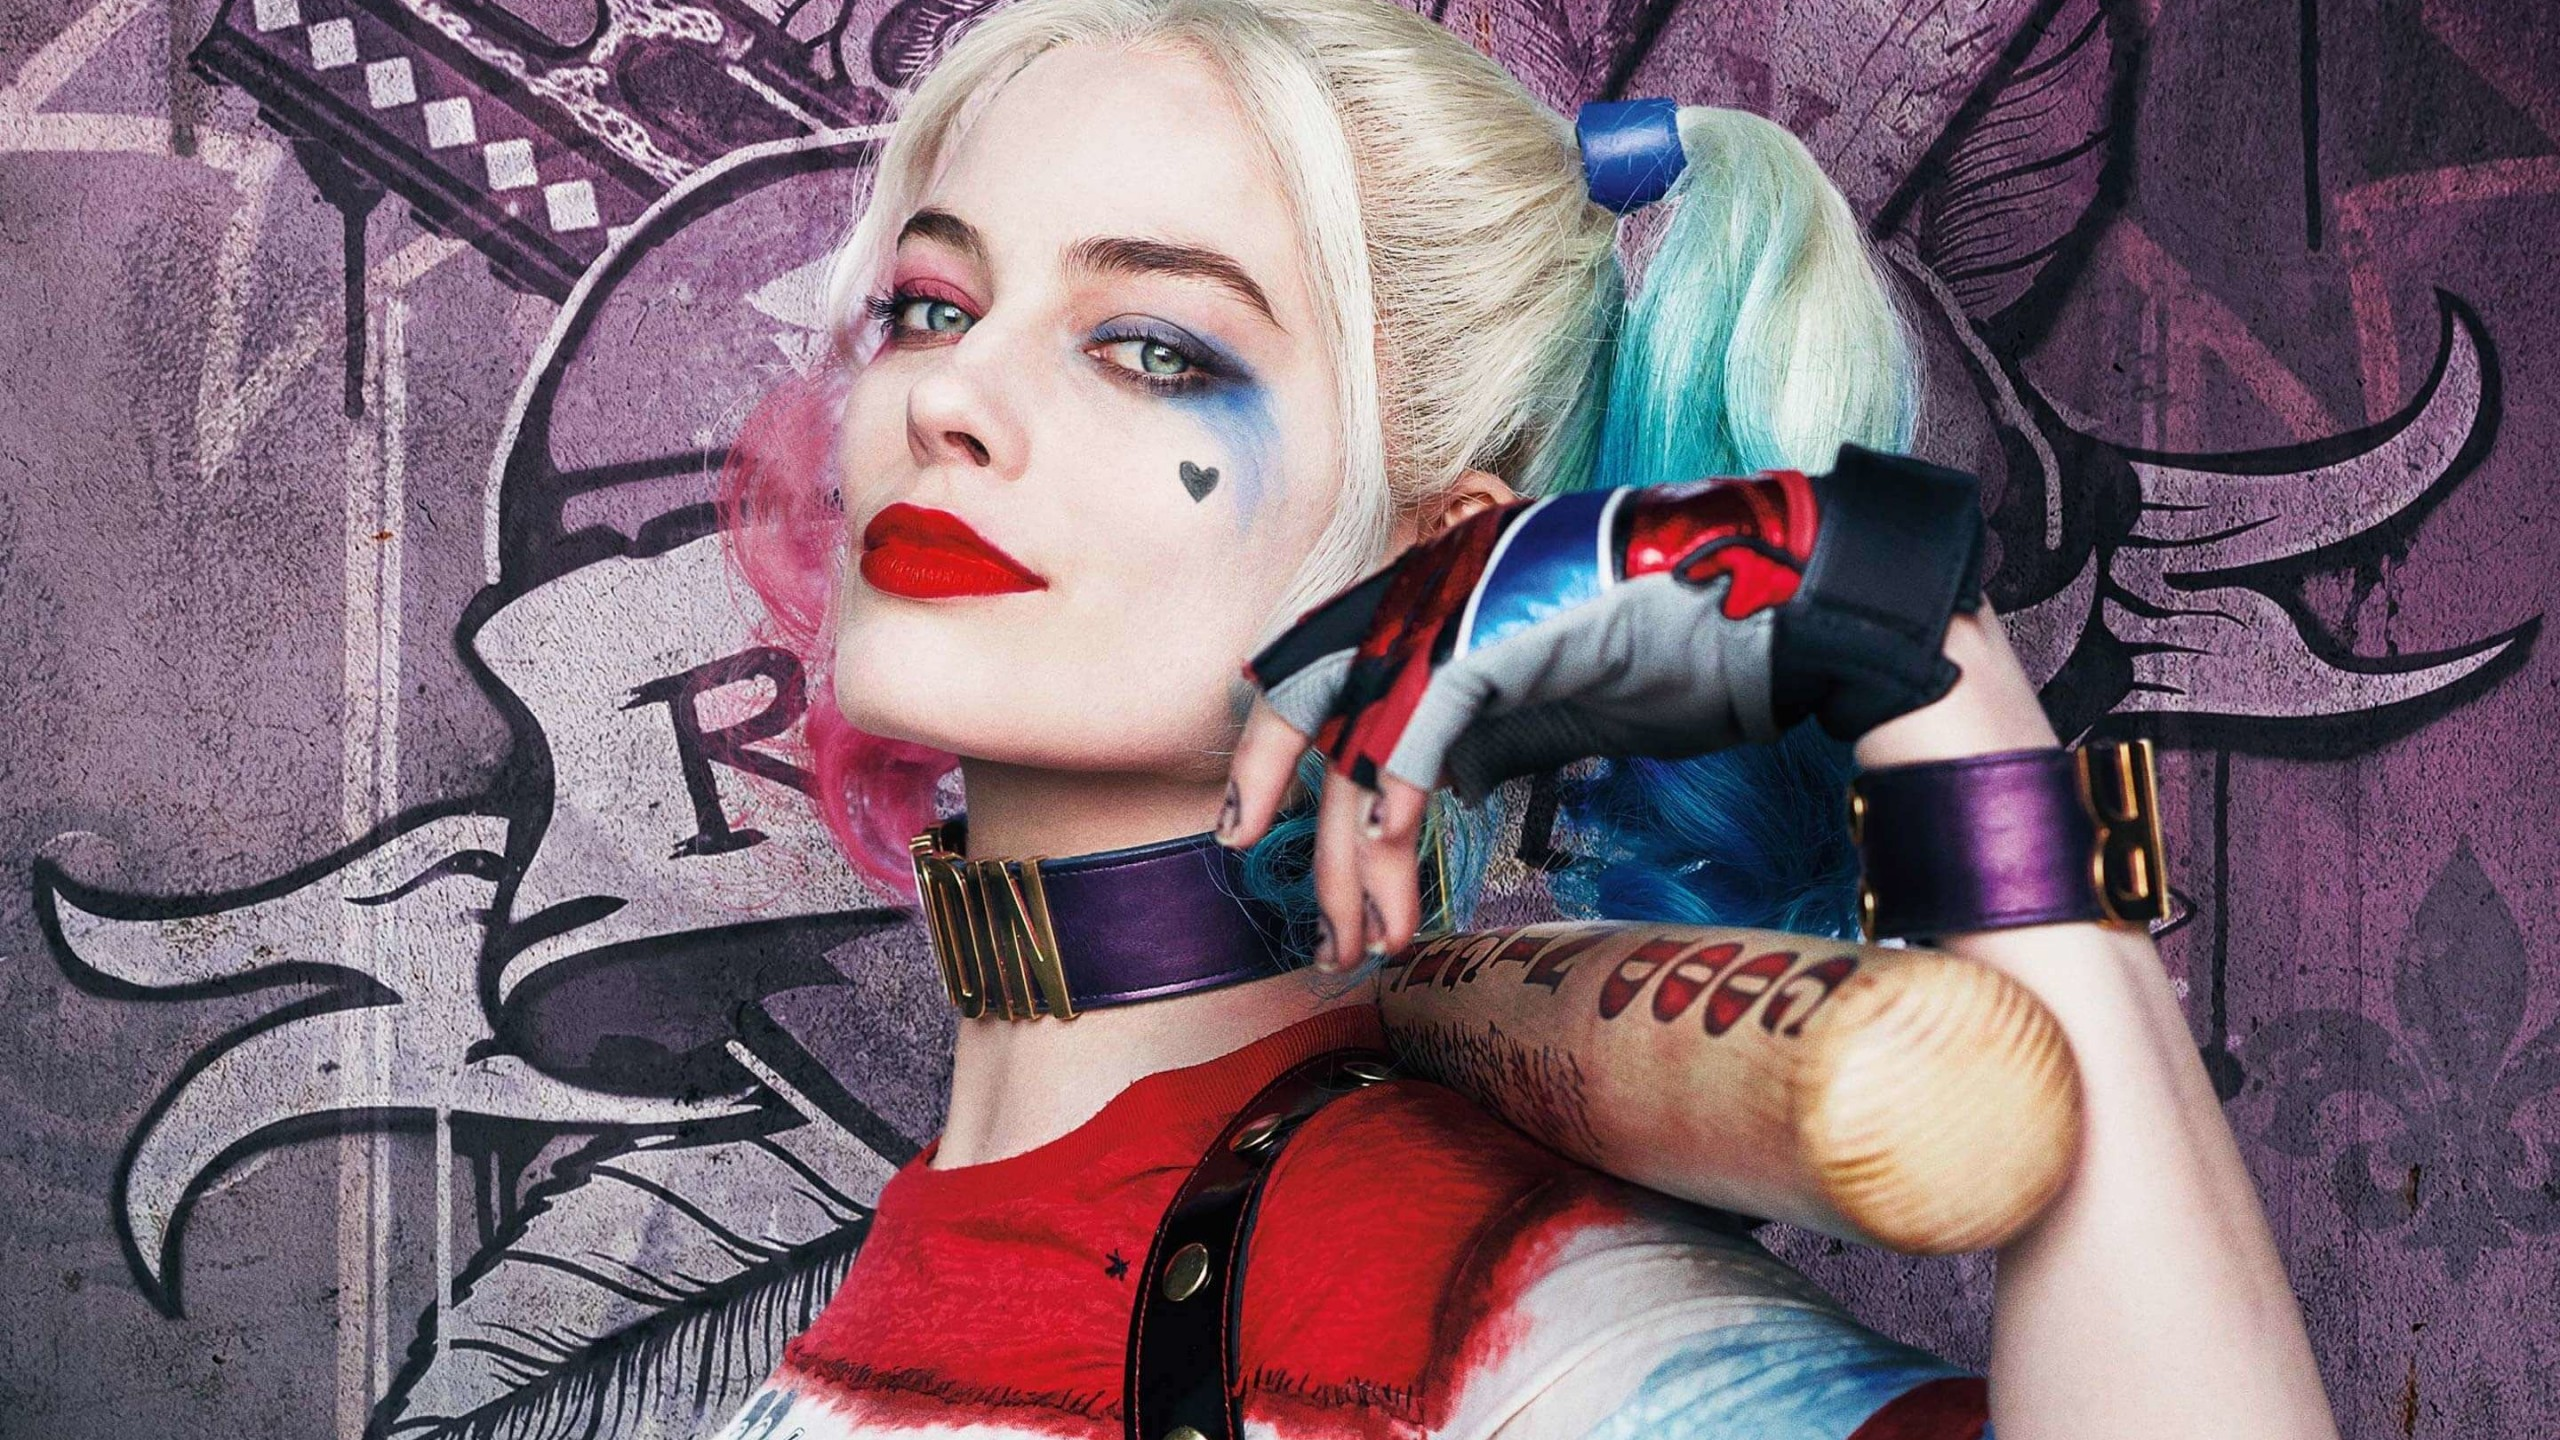 Harley Quinn - Suicide Squad Wallpaper for Social Media YouTube Channel Art